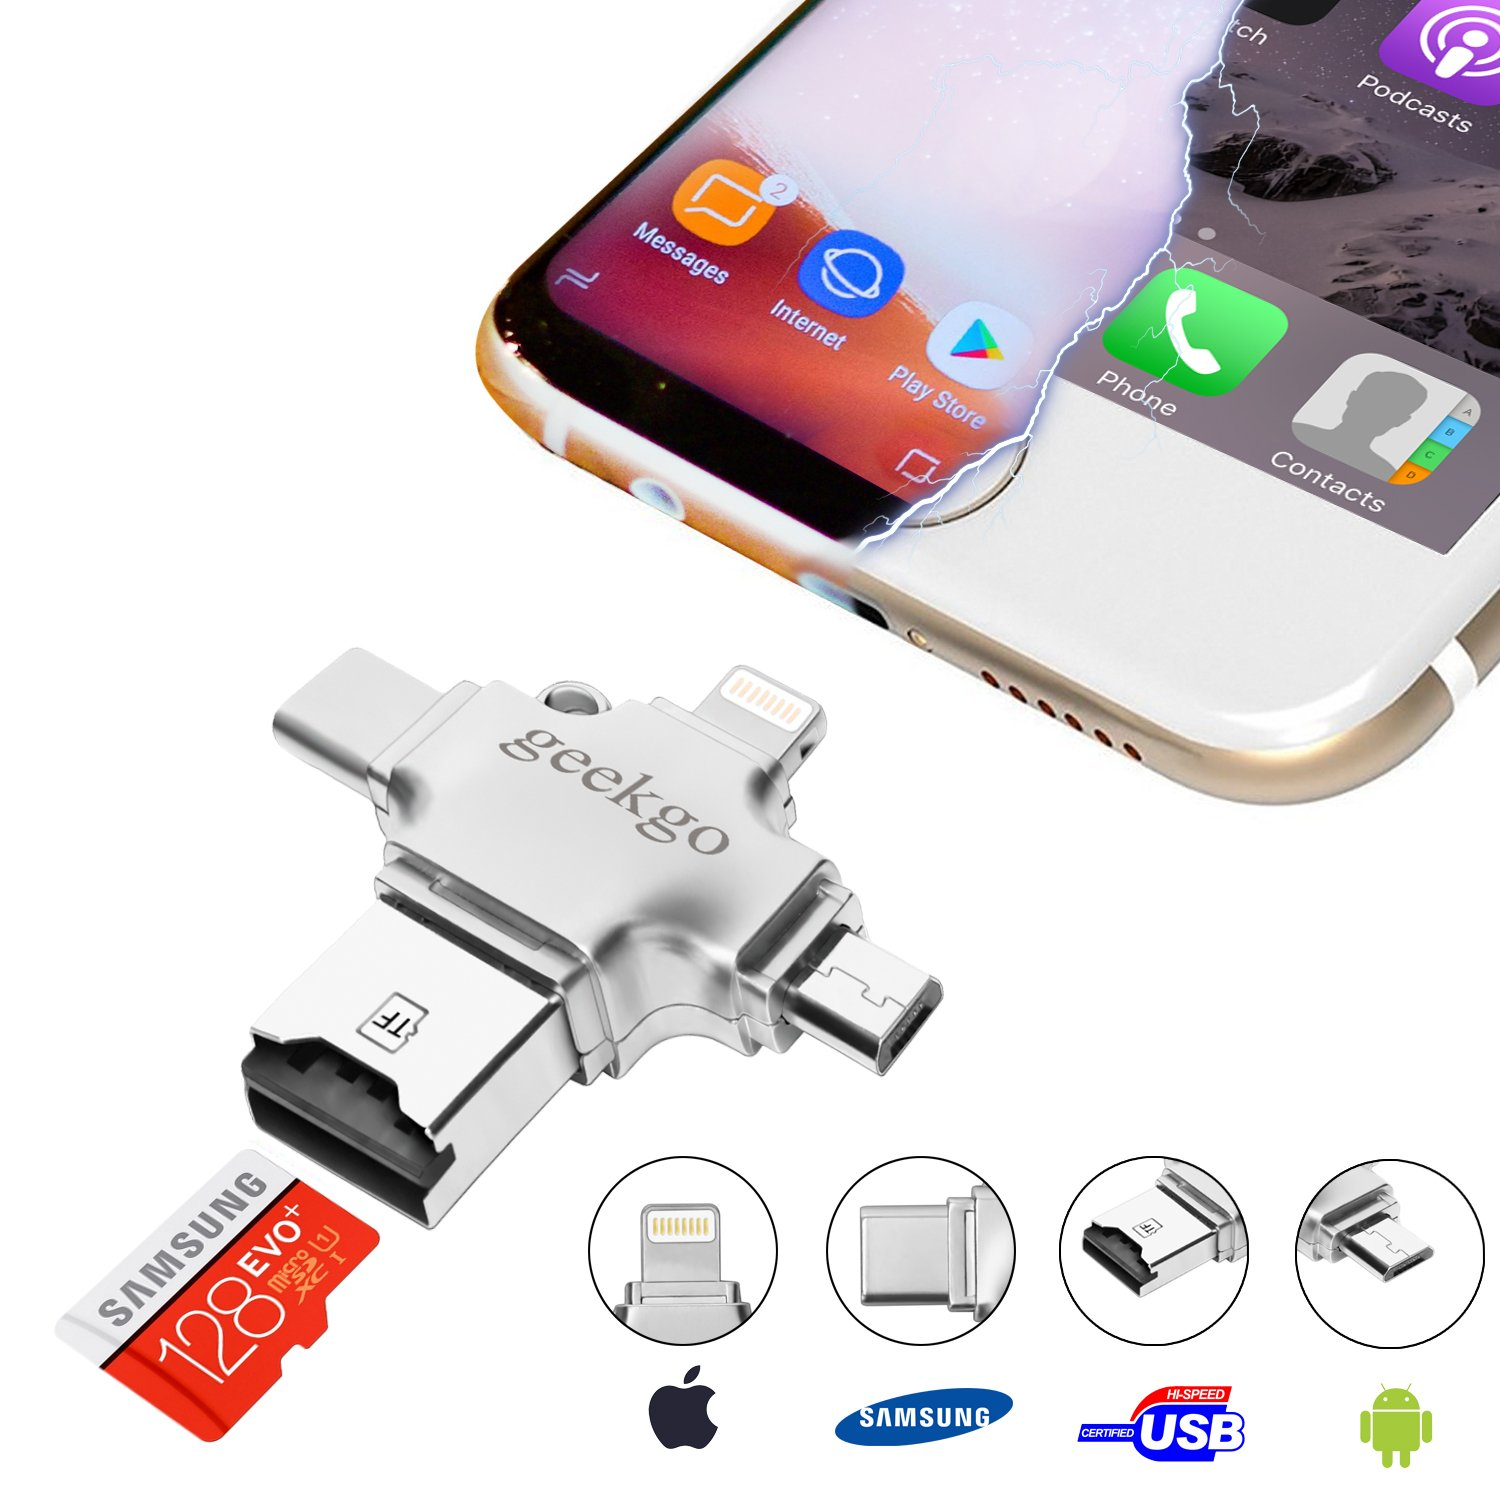 geekgo Micro SD Card Reader for iPhone/iPad/Android Phone/Samsung/Apple Macbook/PC,Memory Card Adapter with Lightning/USB C/Micro USB,Support 8GB/16GB/32GB/64GB/128GB/256GB Micro SD/SDHC/SDXC/TF Cards by geekgo